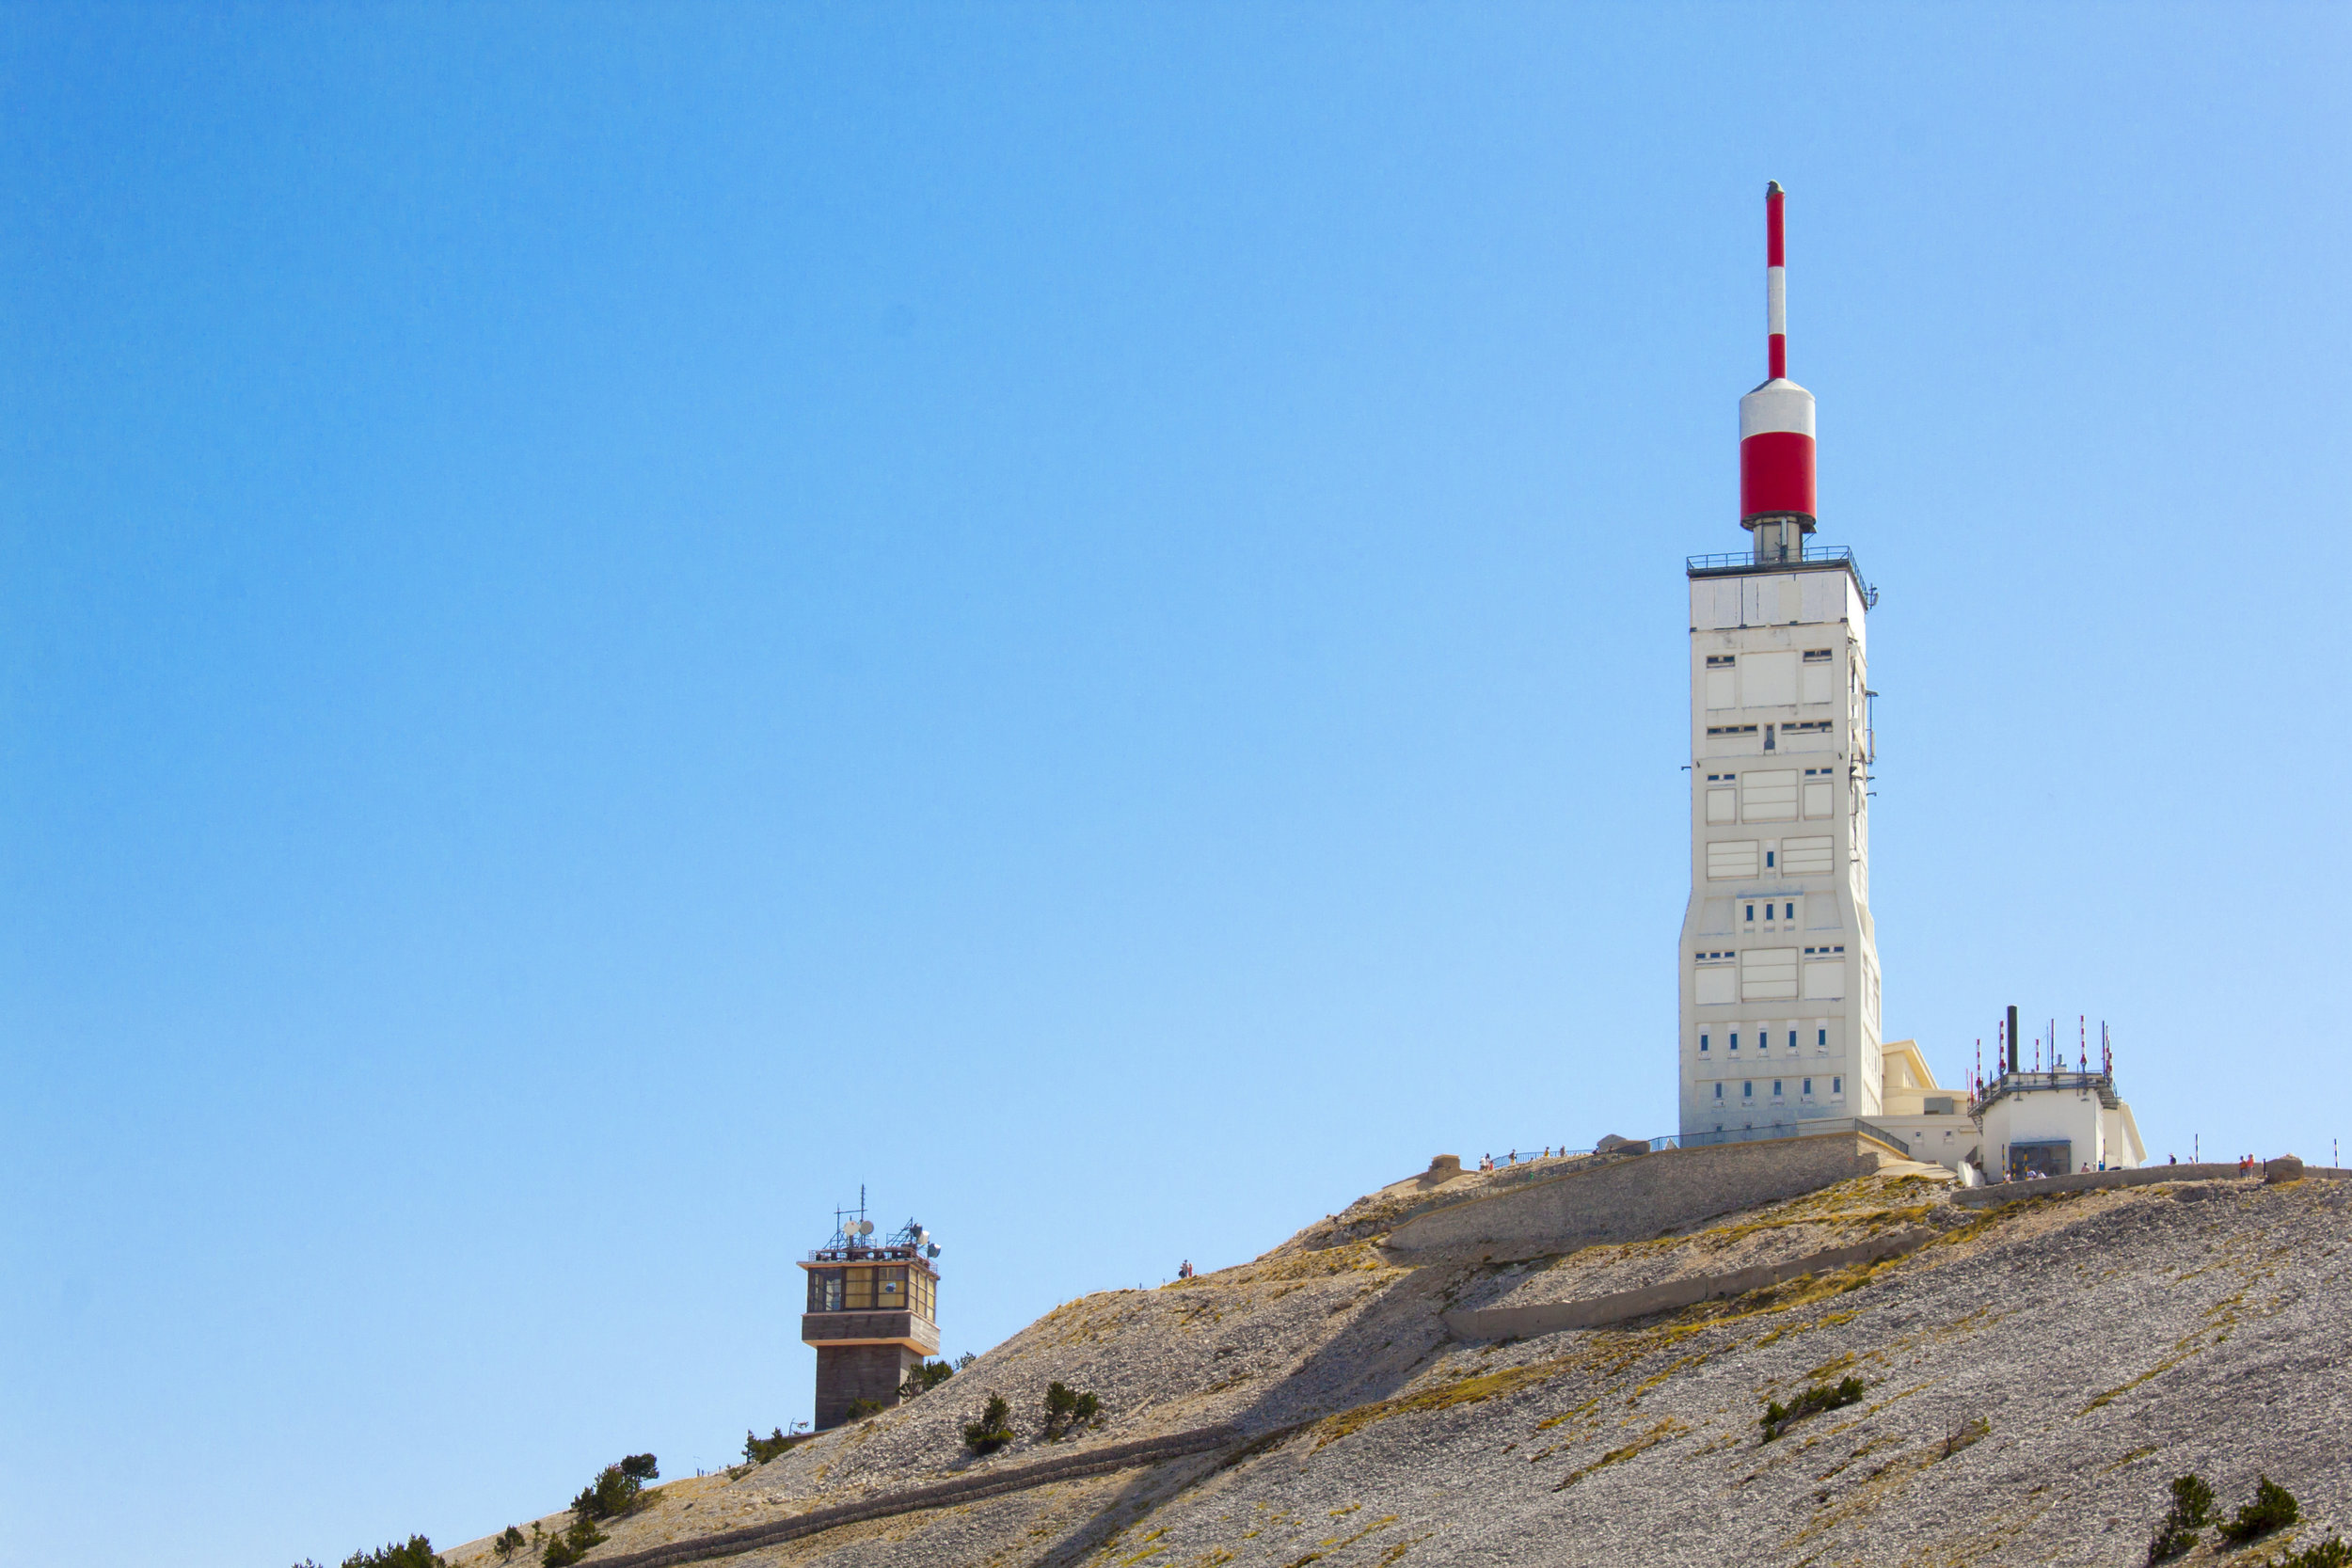 Mont Ventoux Challenge 2020 - 3 days 3 nights